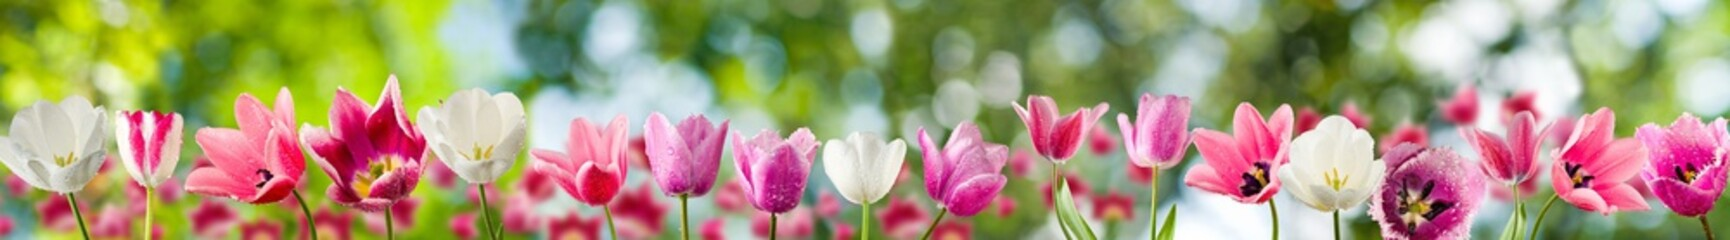 Image of tulips closeup